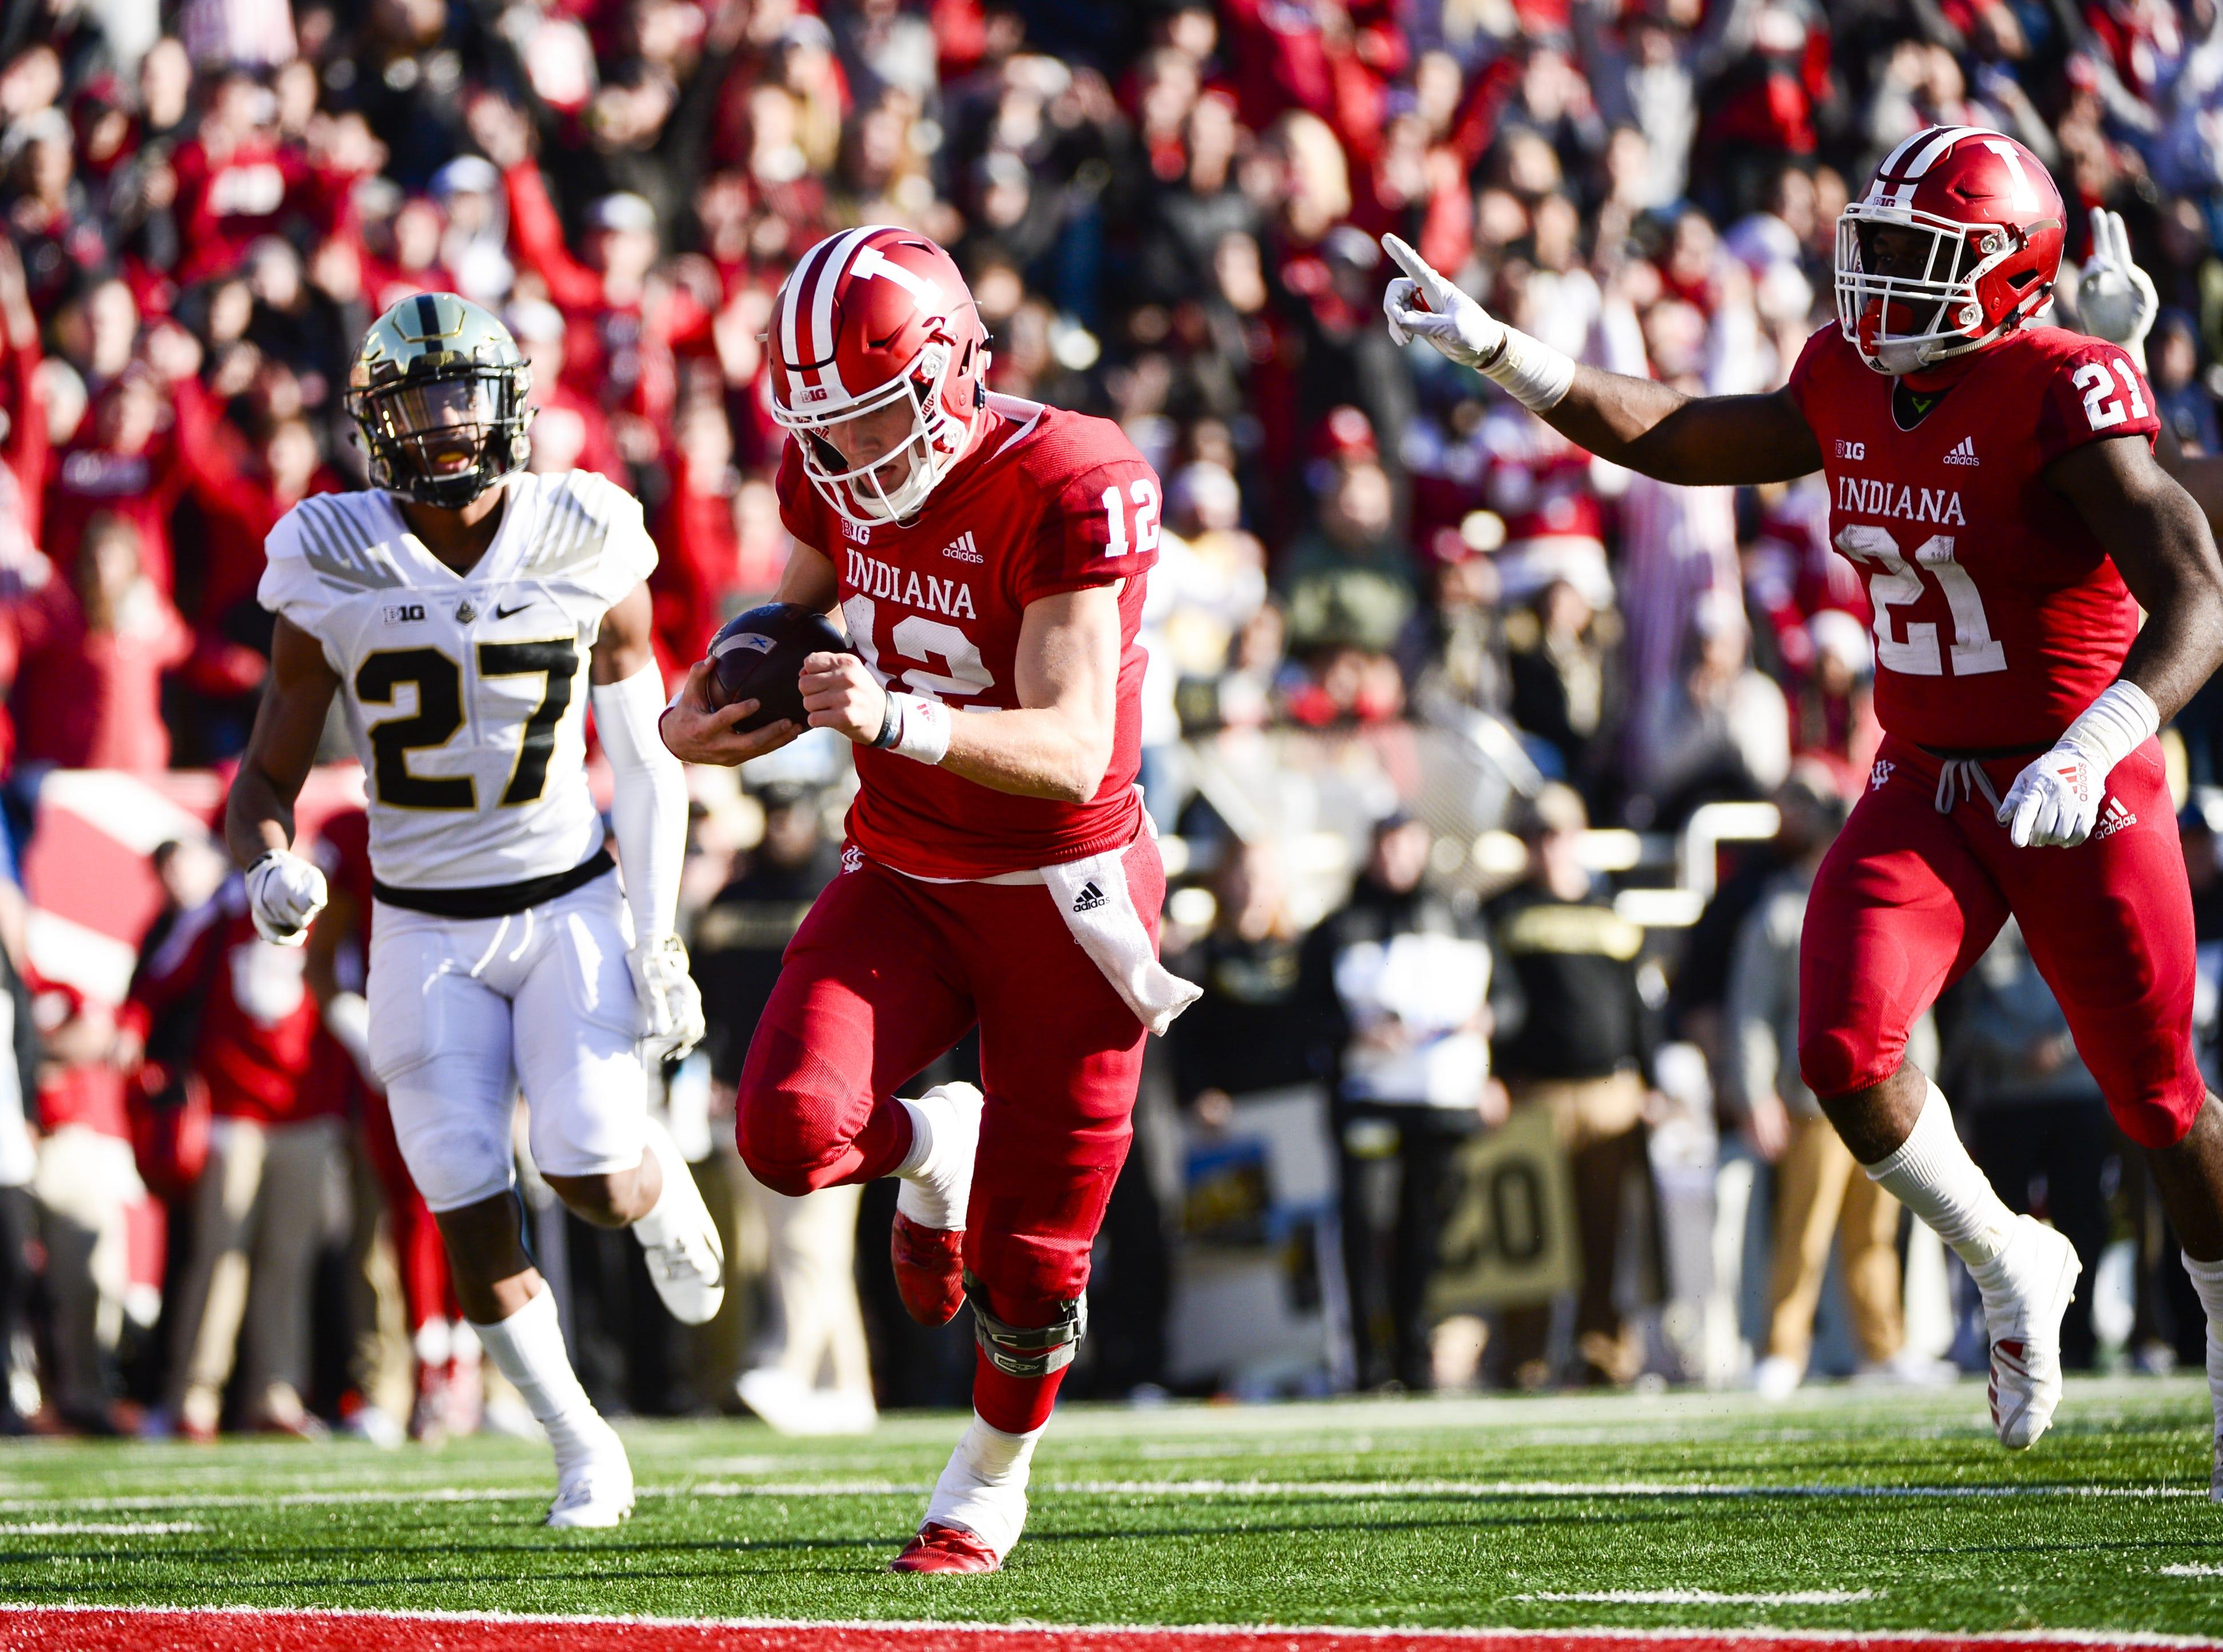 Indiana Hoosiers quarterback Peyton Ramsey (12) scores a touchdown during the game against Purdue at Memorial Stadium in Bloomington Ind., on Saturday, Nov. 24, 2018.